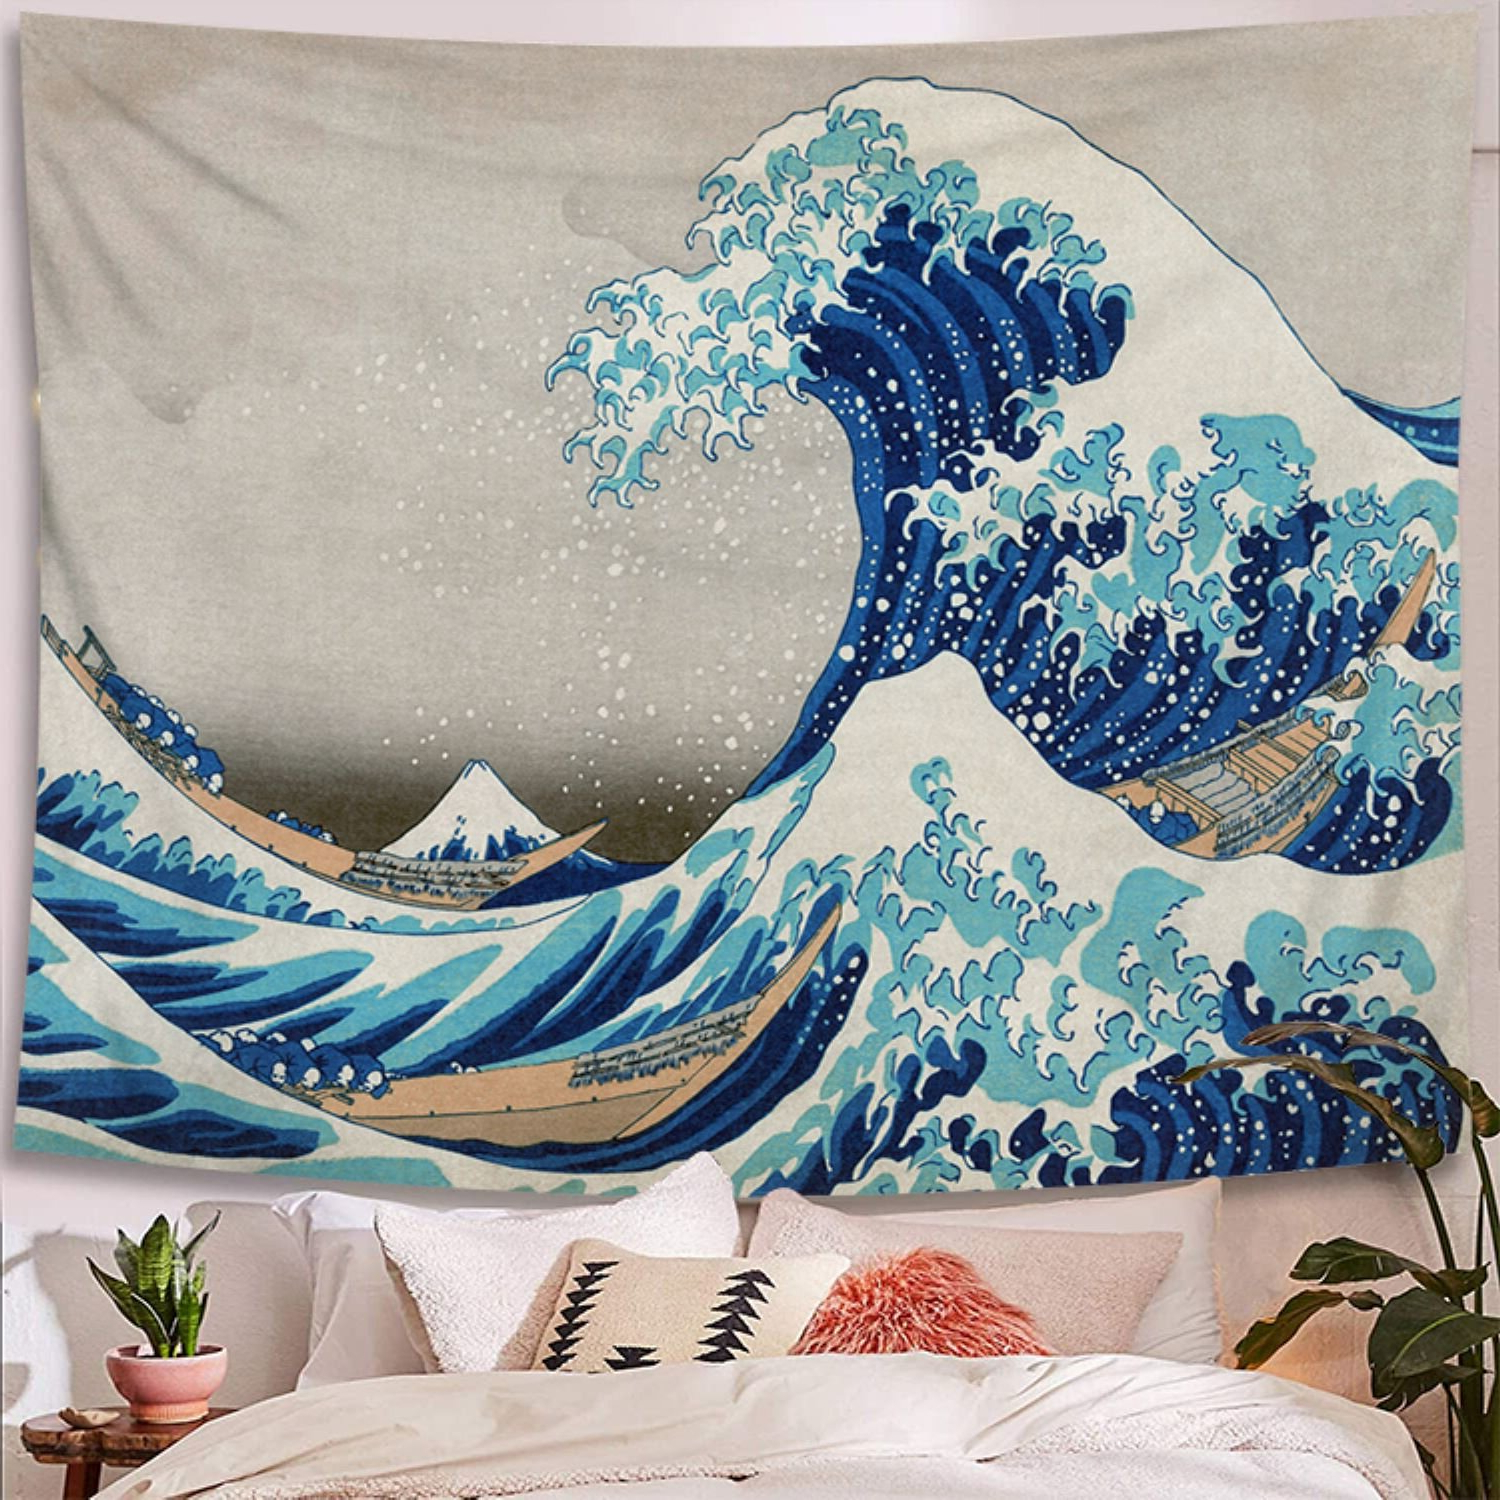 Wayfair Throughout Trendy Blended Fabric Breeze Of Admiration Woven Tapestries (View 16 of 20)